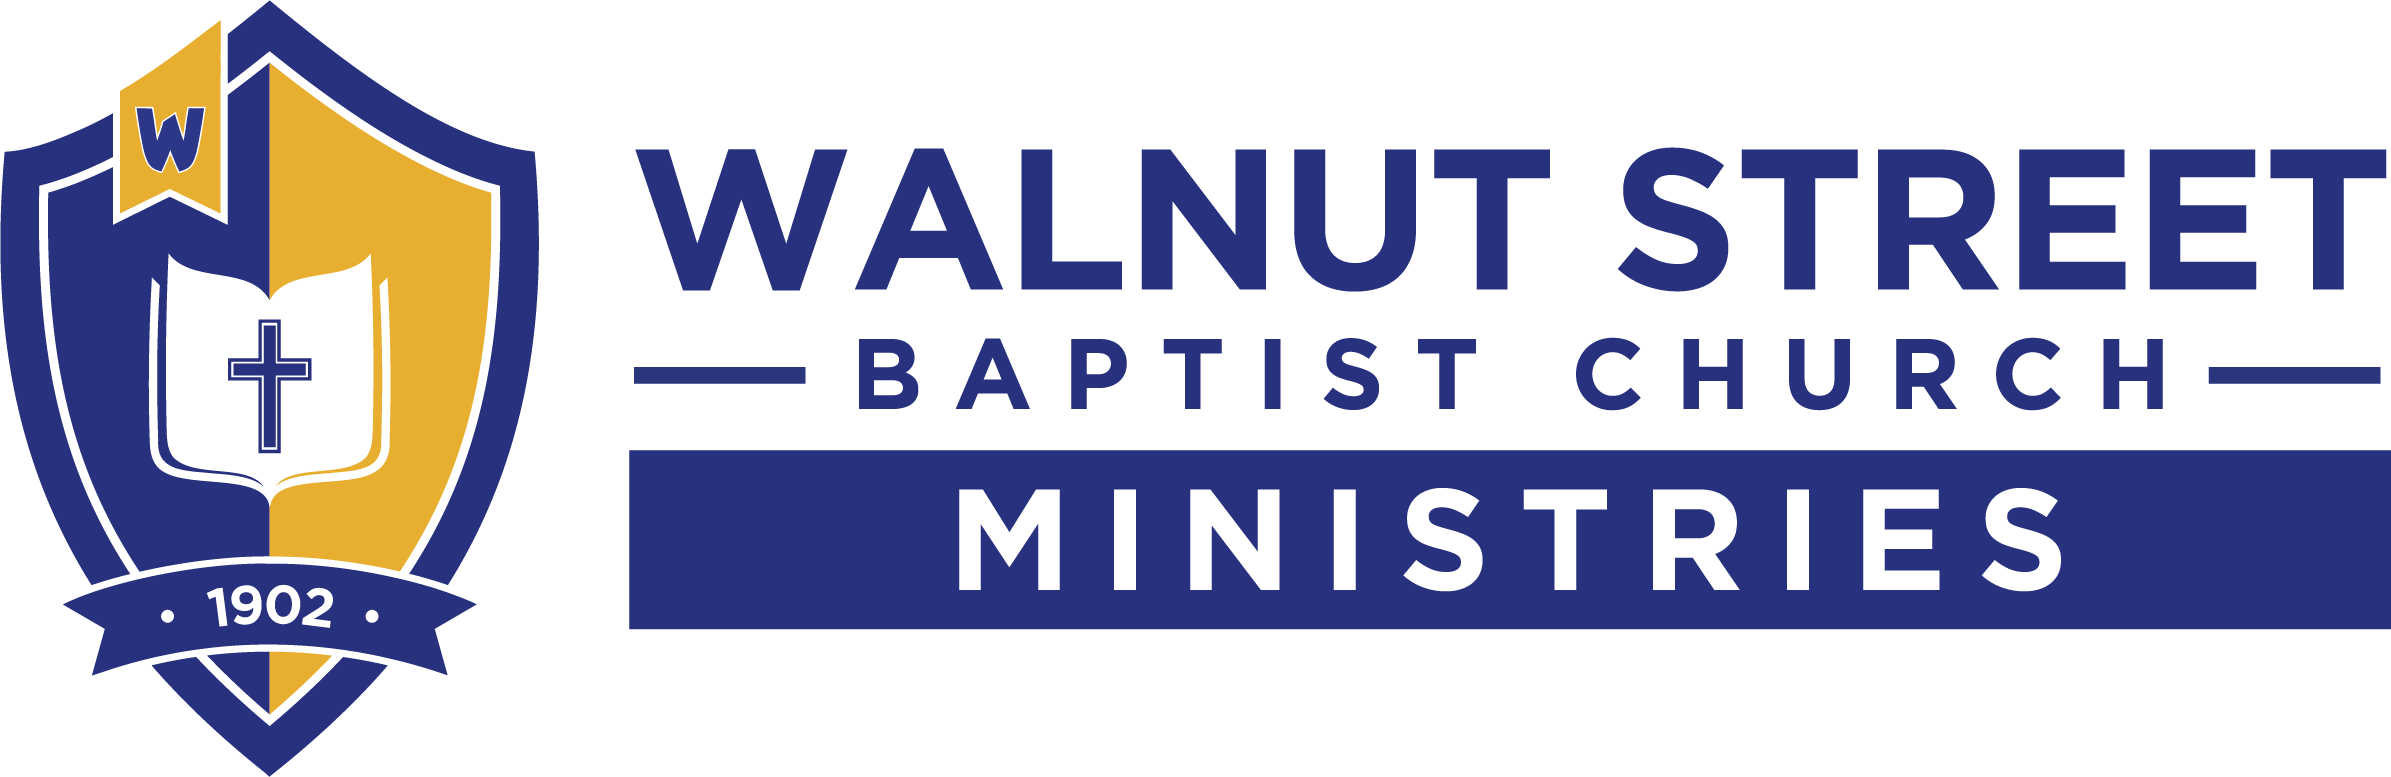 Walnut Street Baptist Church Ministries & Walnut Street Christian School